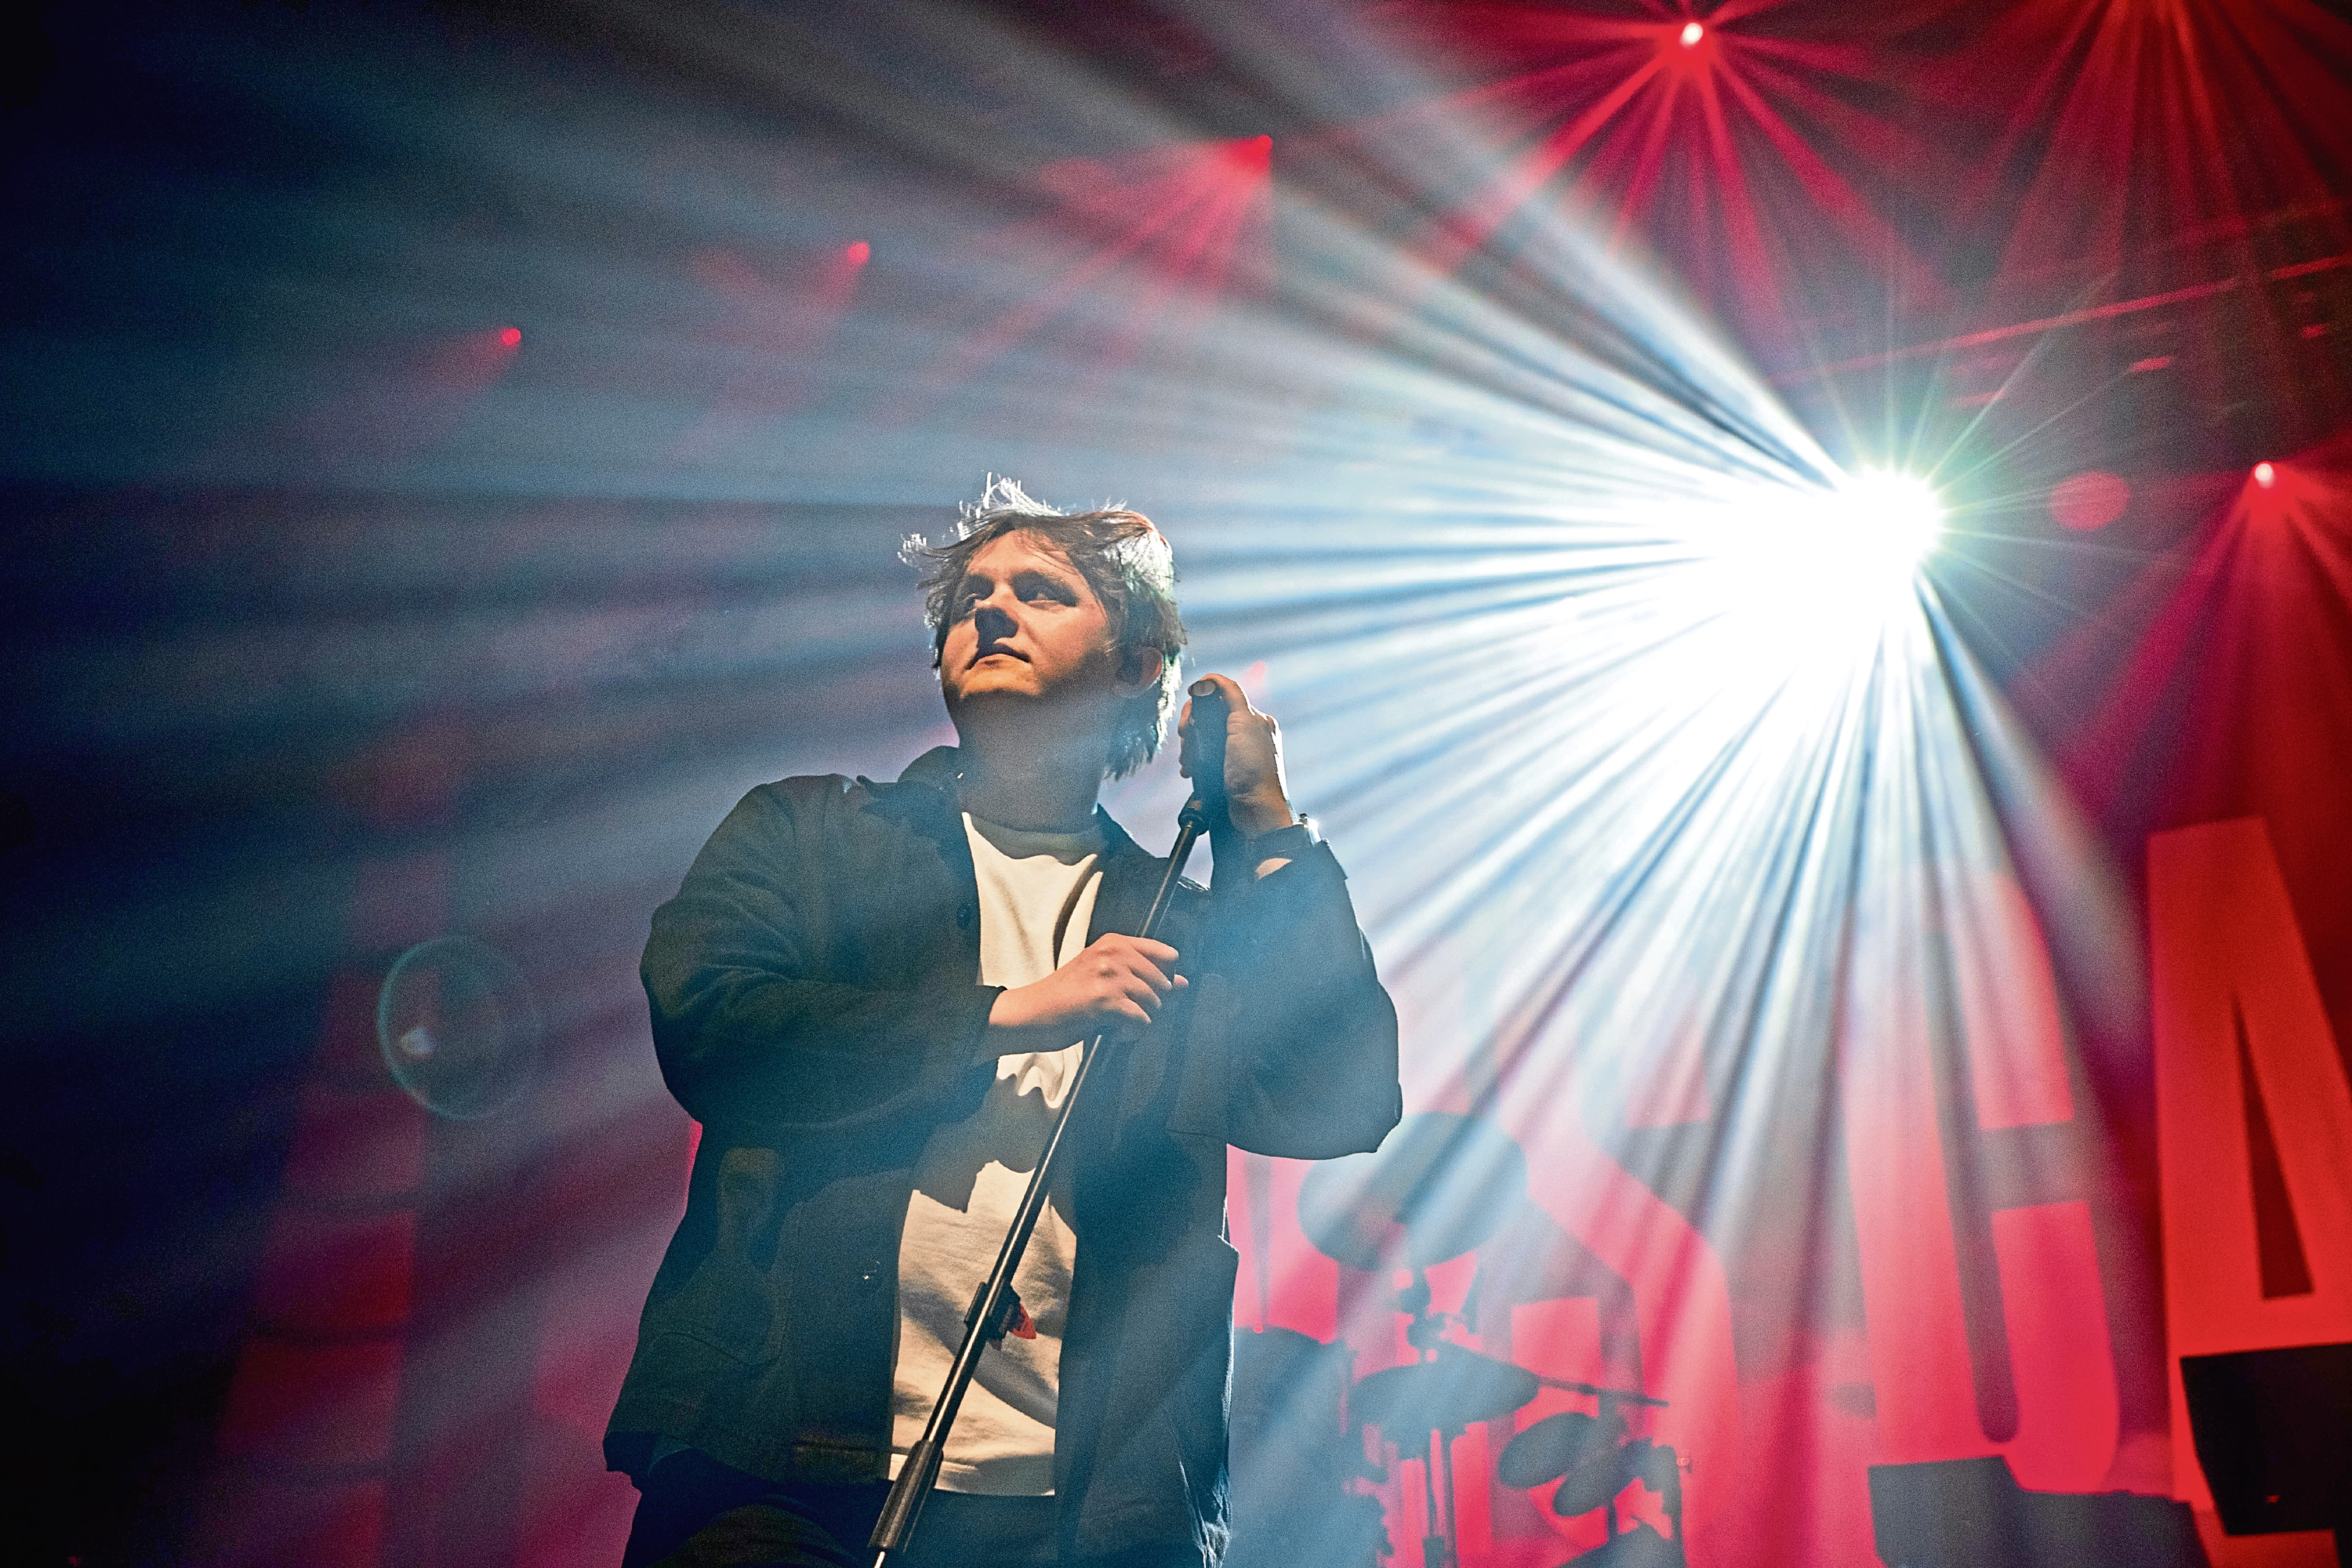 Lewis Capaldi on stage at Perth Concert Hall